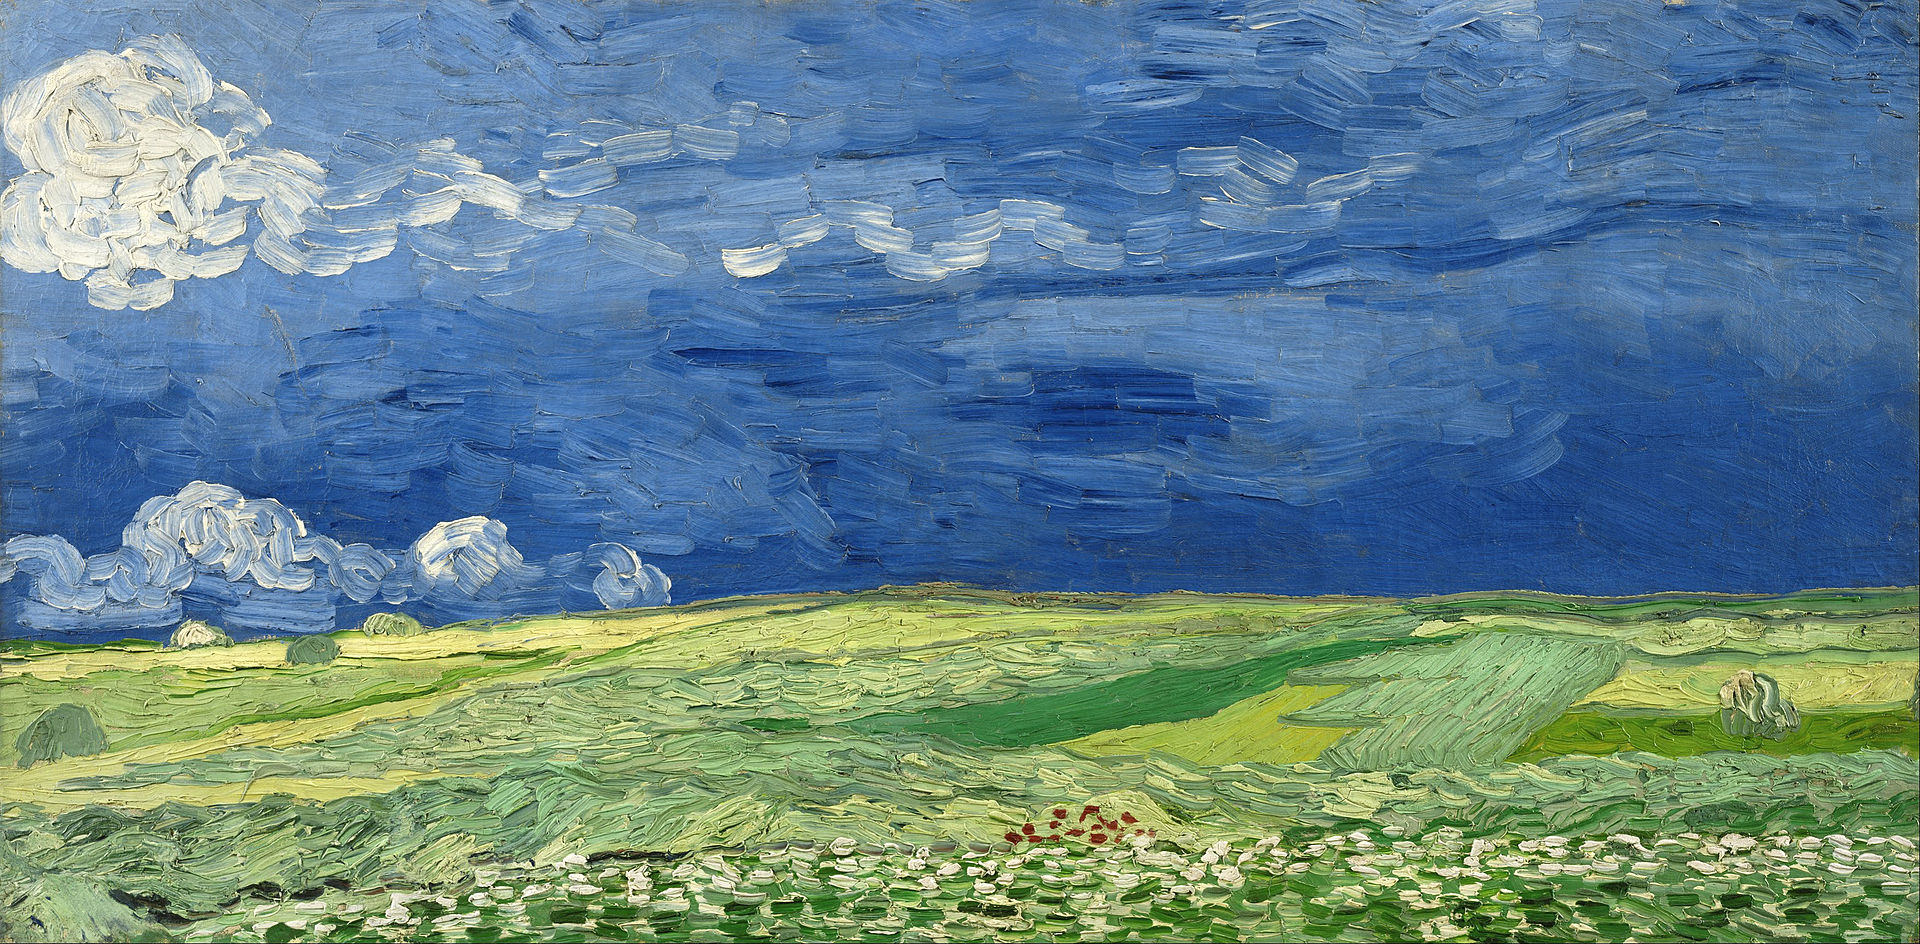 An expansive painting of a wheatfield, with green hills through the centre underneath dark and forbidding skies.